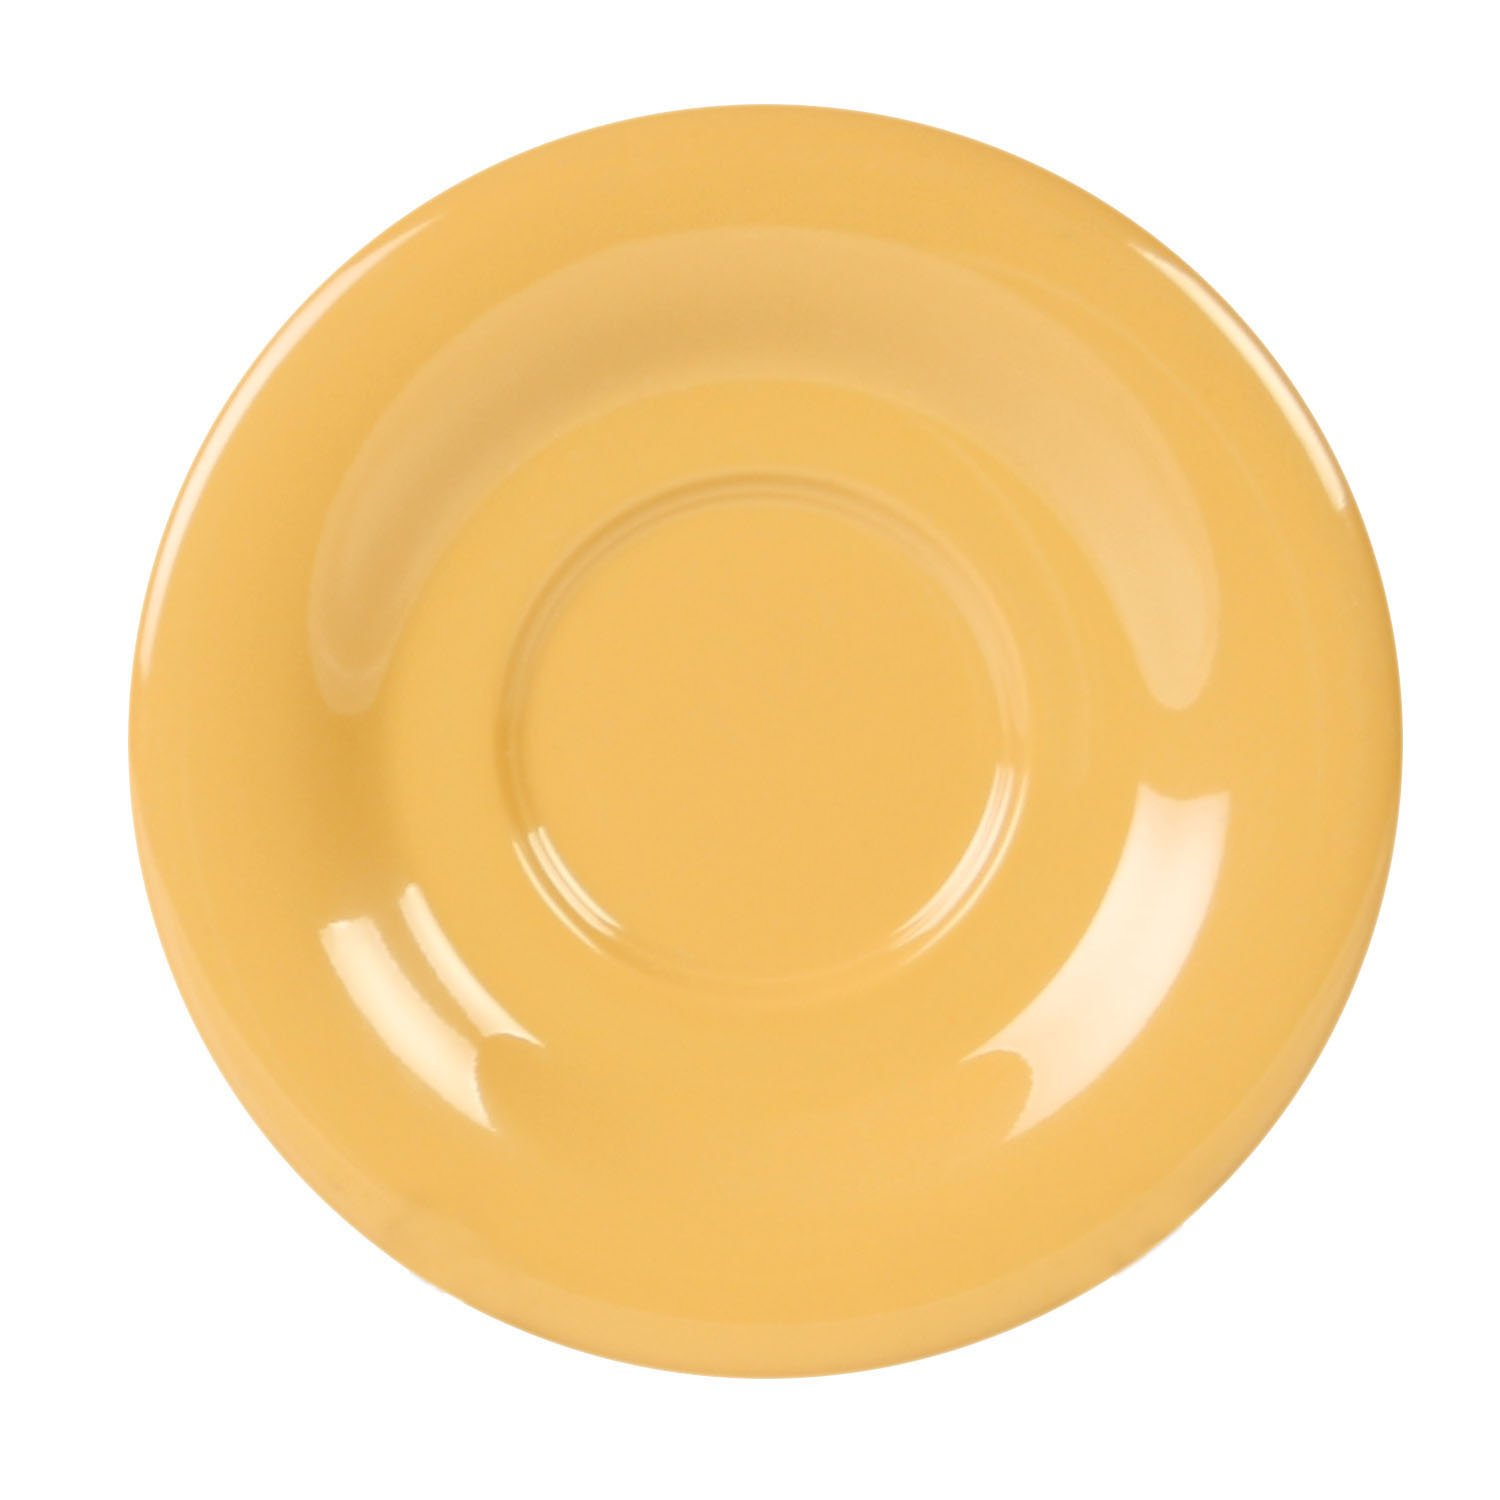 Excellanté Yellow Melamine Collection 5-1/2-Inch Saucer, Yellow, 12-Piece